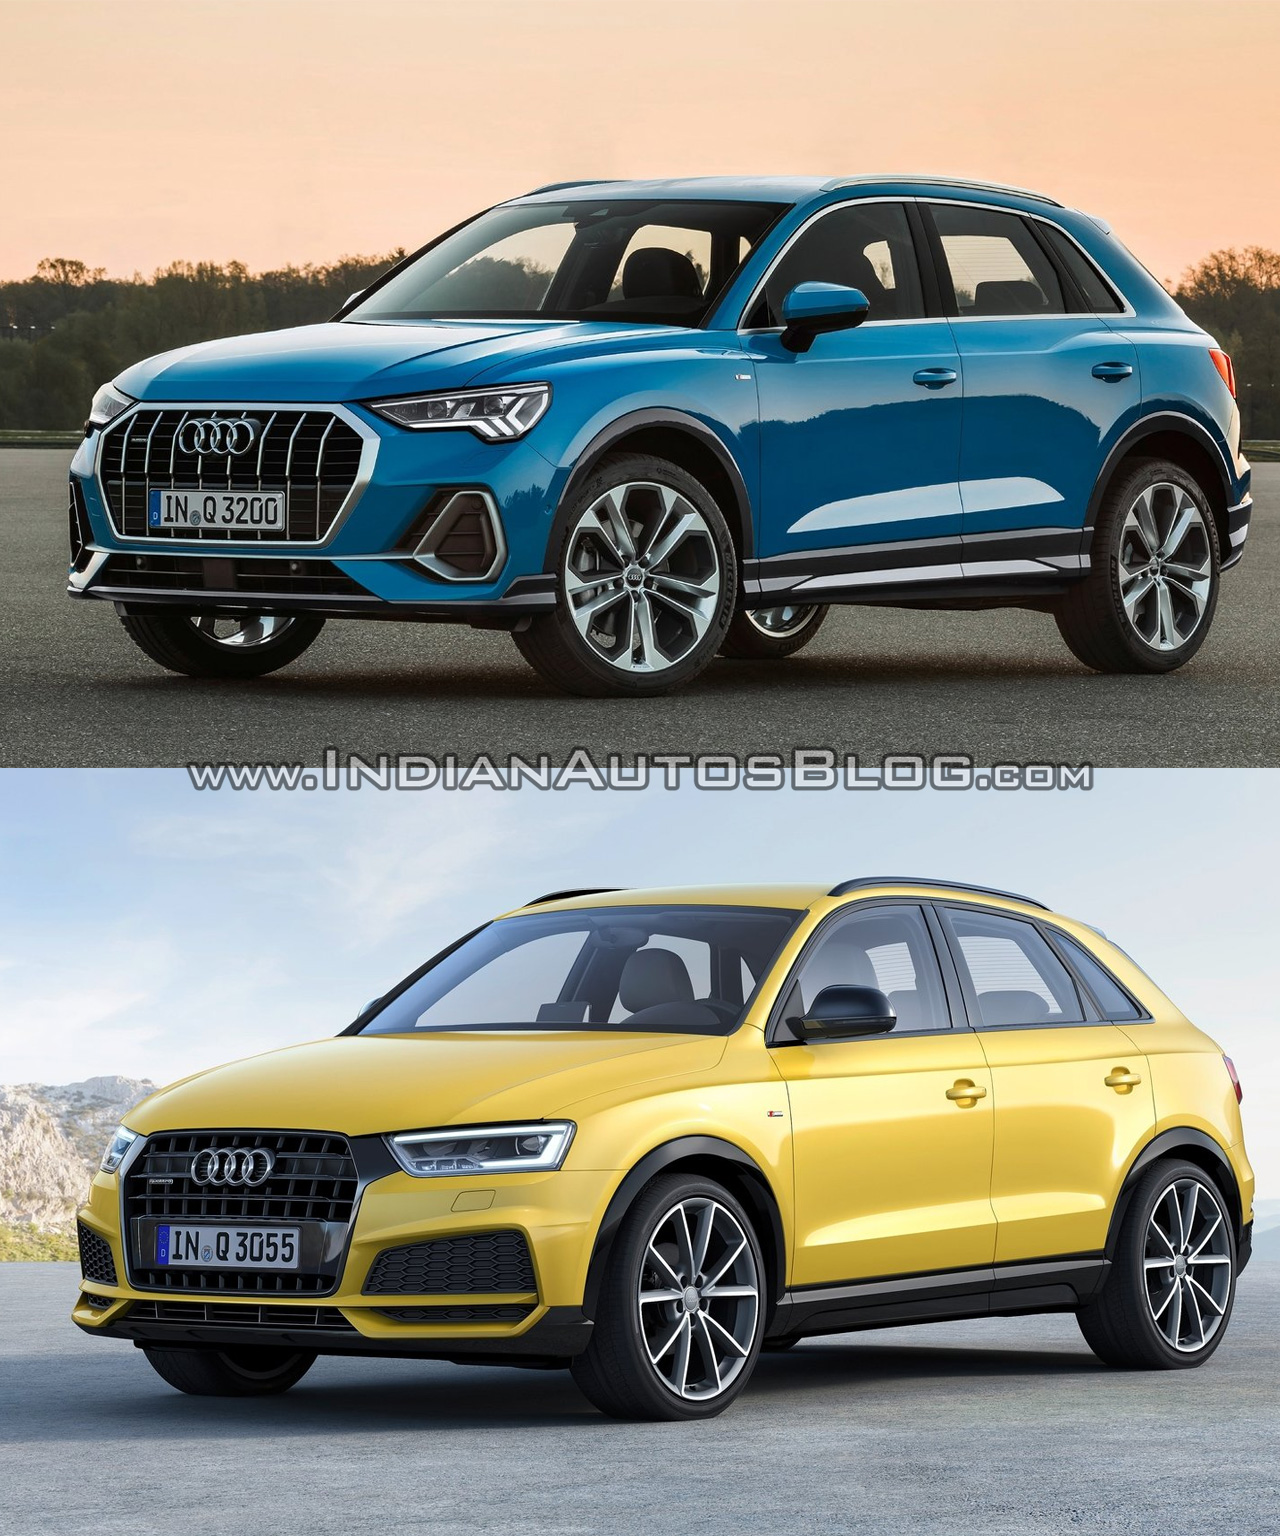 Audi Q3 leaked ahead of official unveiling